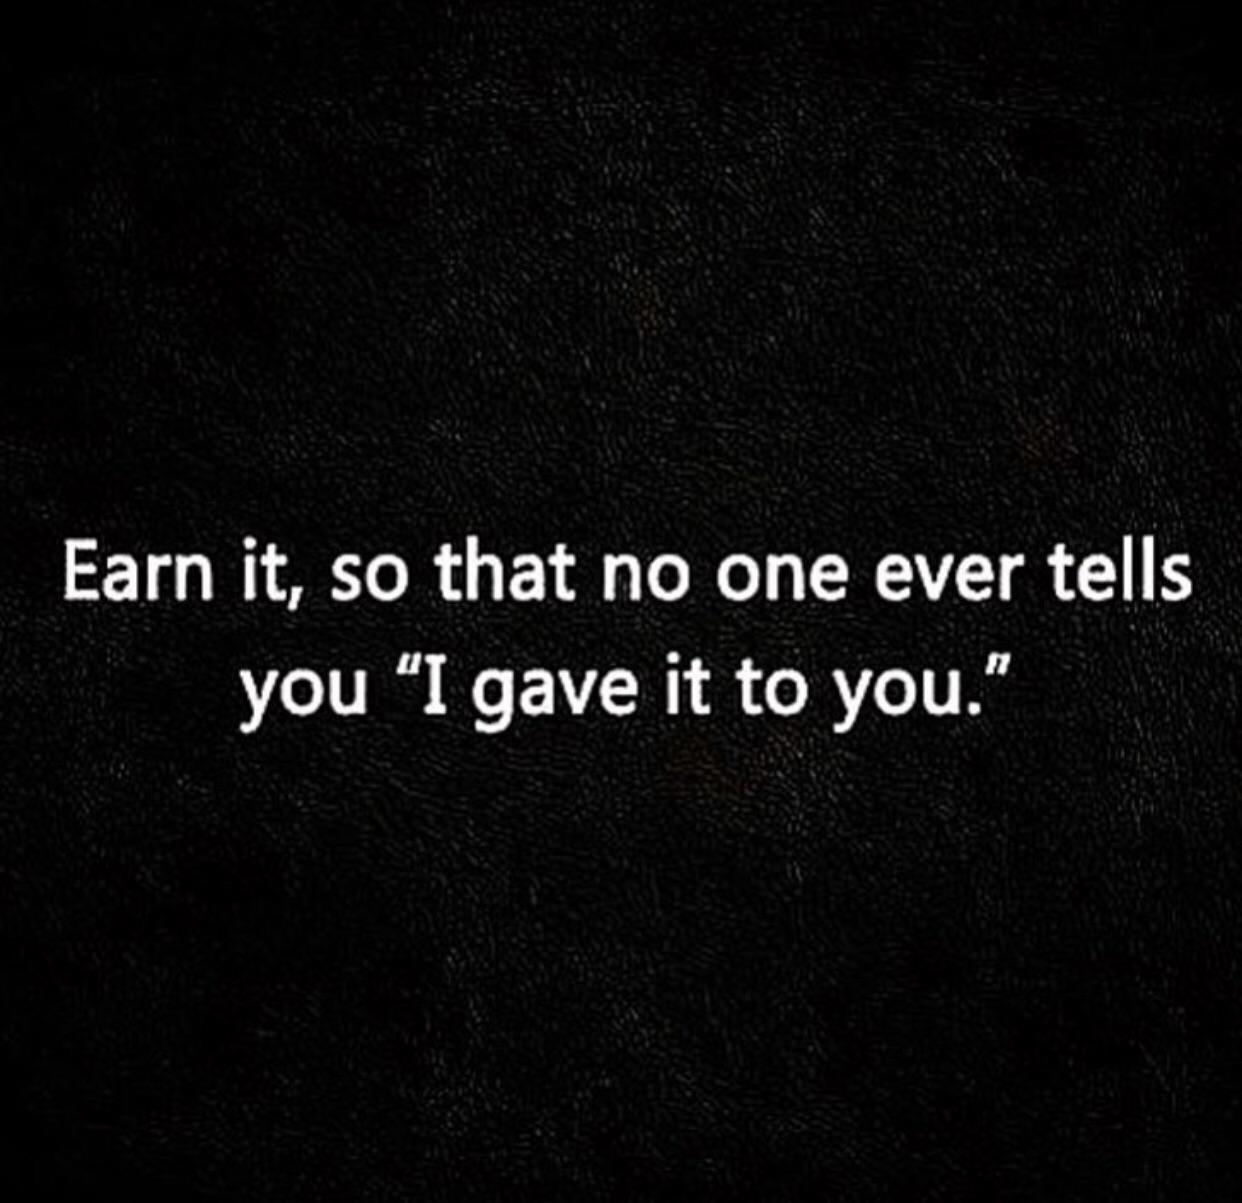 [Image] Earn it.